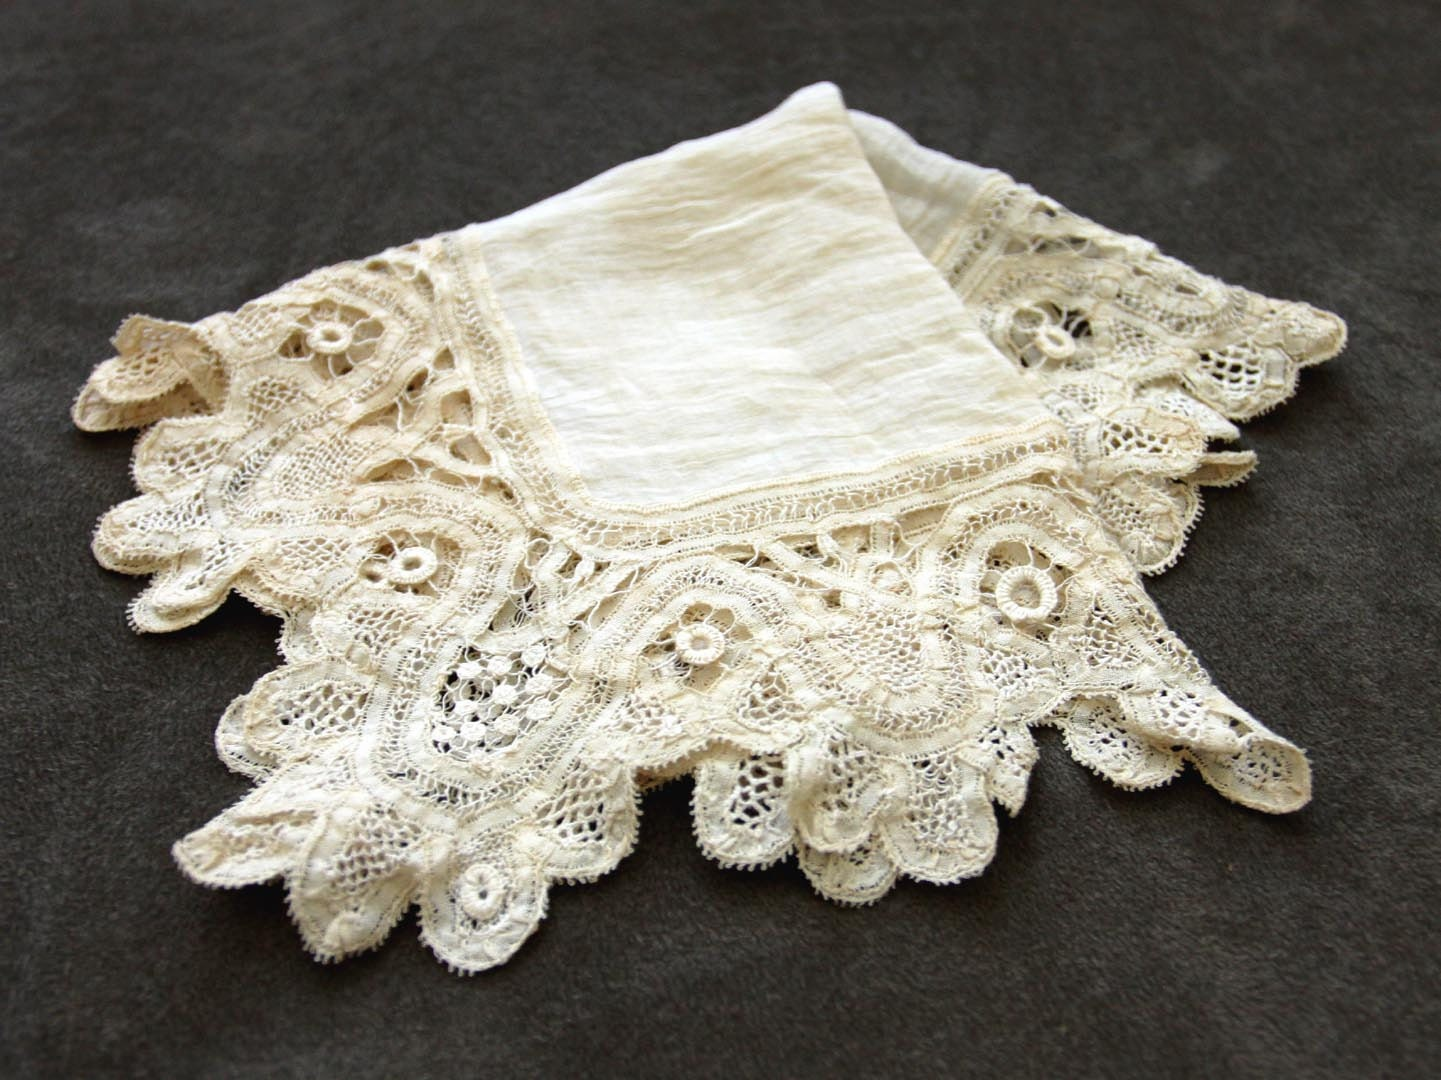 Silk and Lace Vintage Wedding Bridal Handkerchief - in Antique White / Ivory - Victorian Style - NewOrleansEclectics